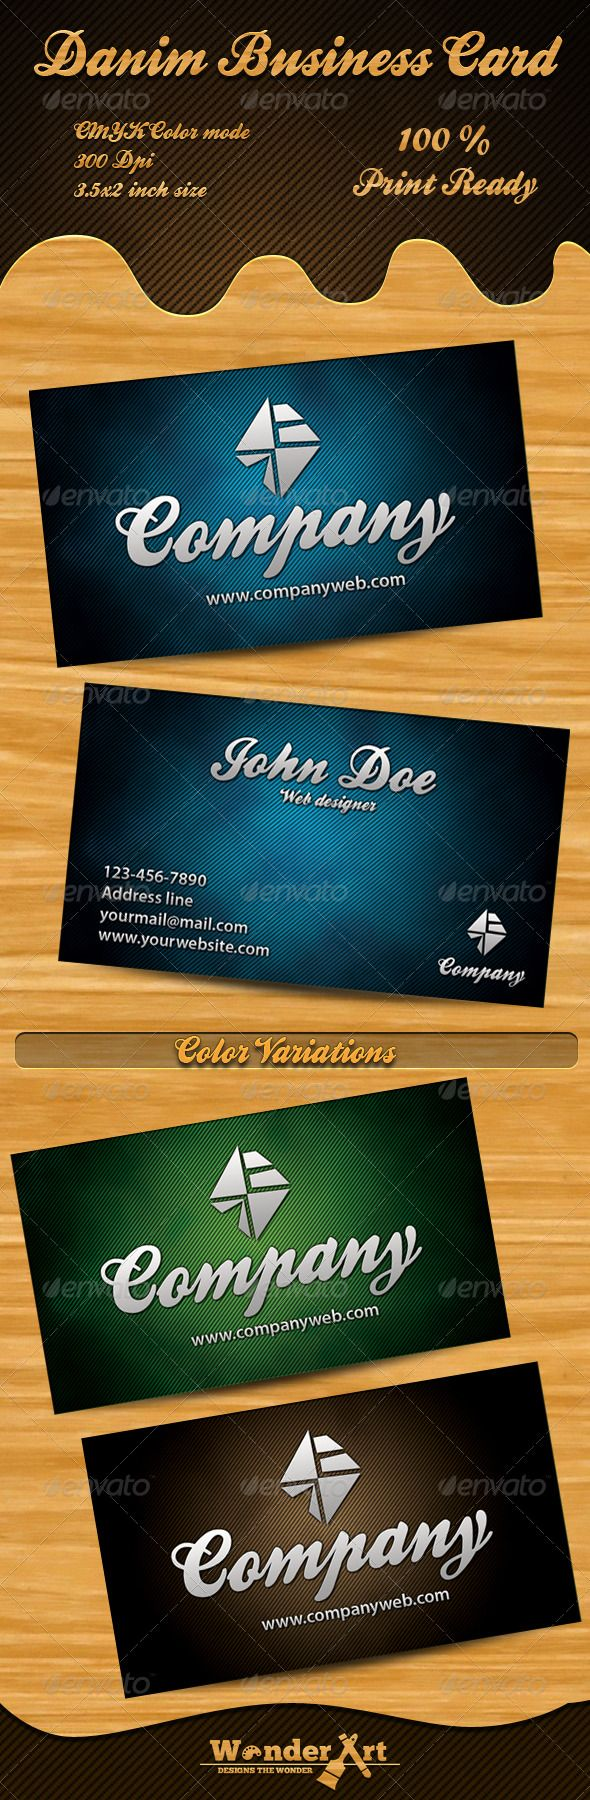 96 best print templates images on pinterest texts cards and danim business card magicingreecefo Gallery